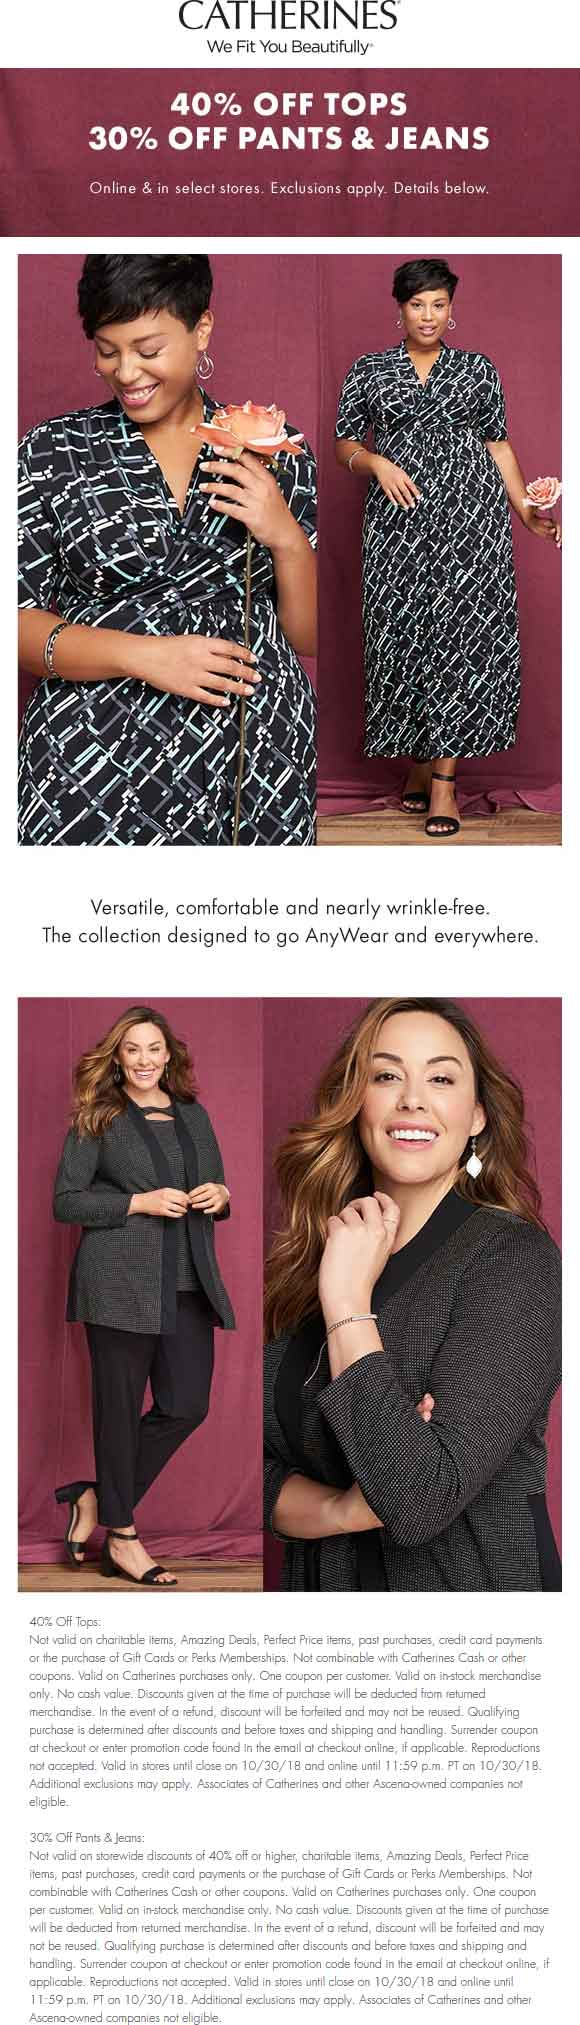 Catherines Coupon October 2019 40% off tops & more at Catherines, ditto online